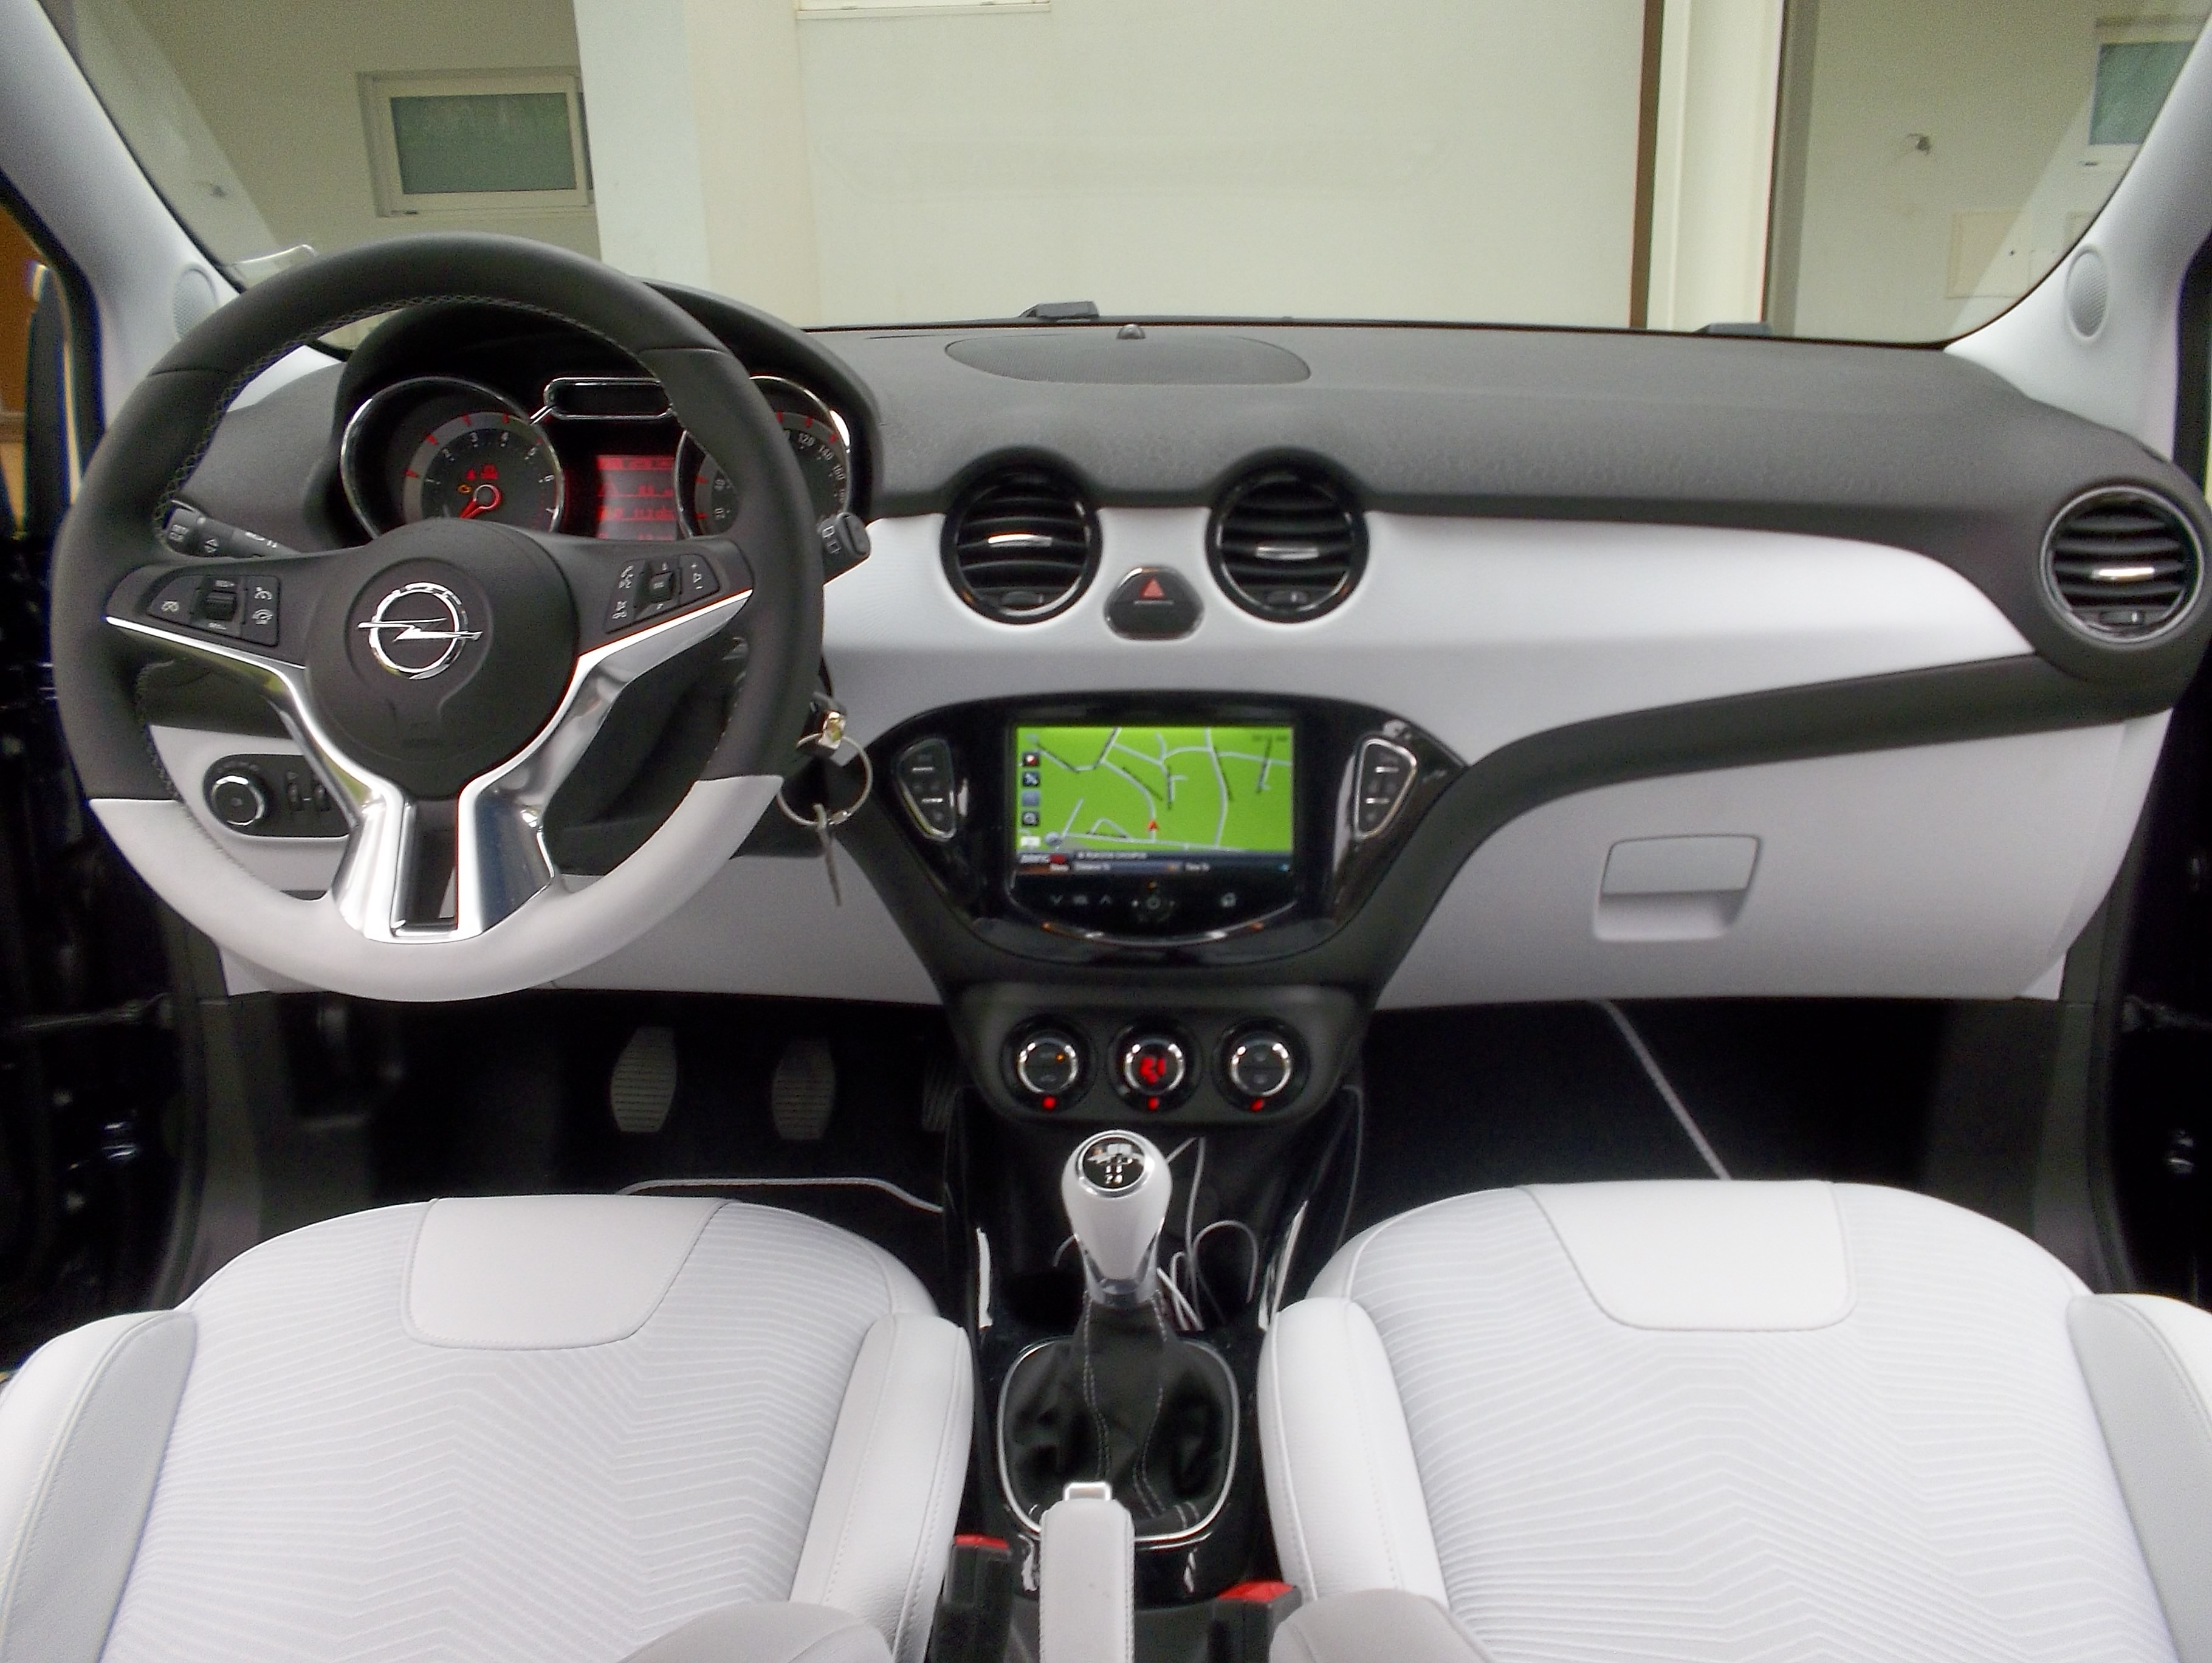 Essai vid o opel adam croquer for Opel adam s interieur